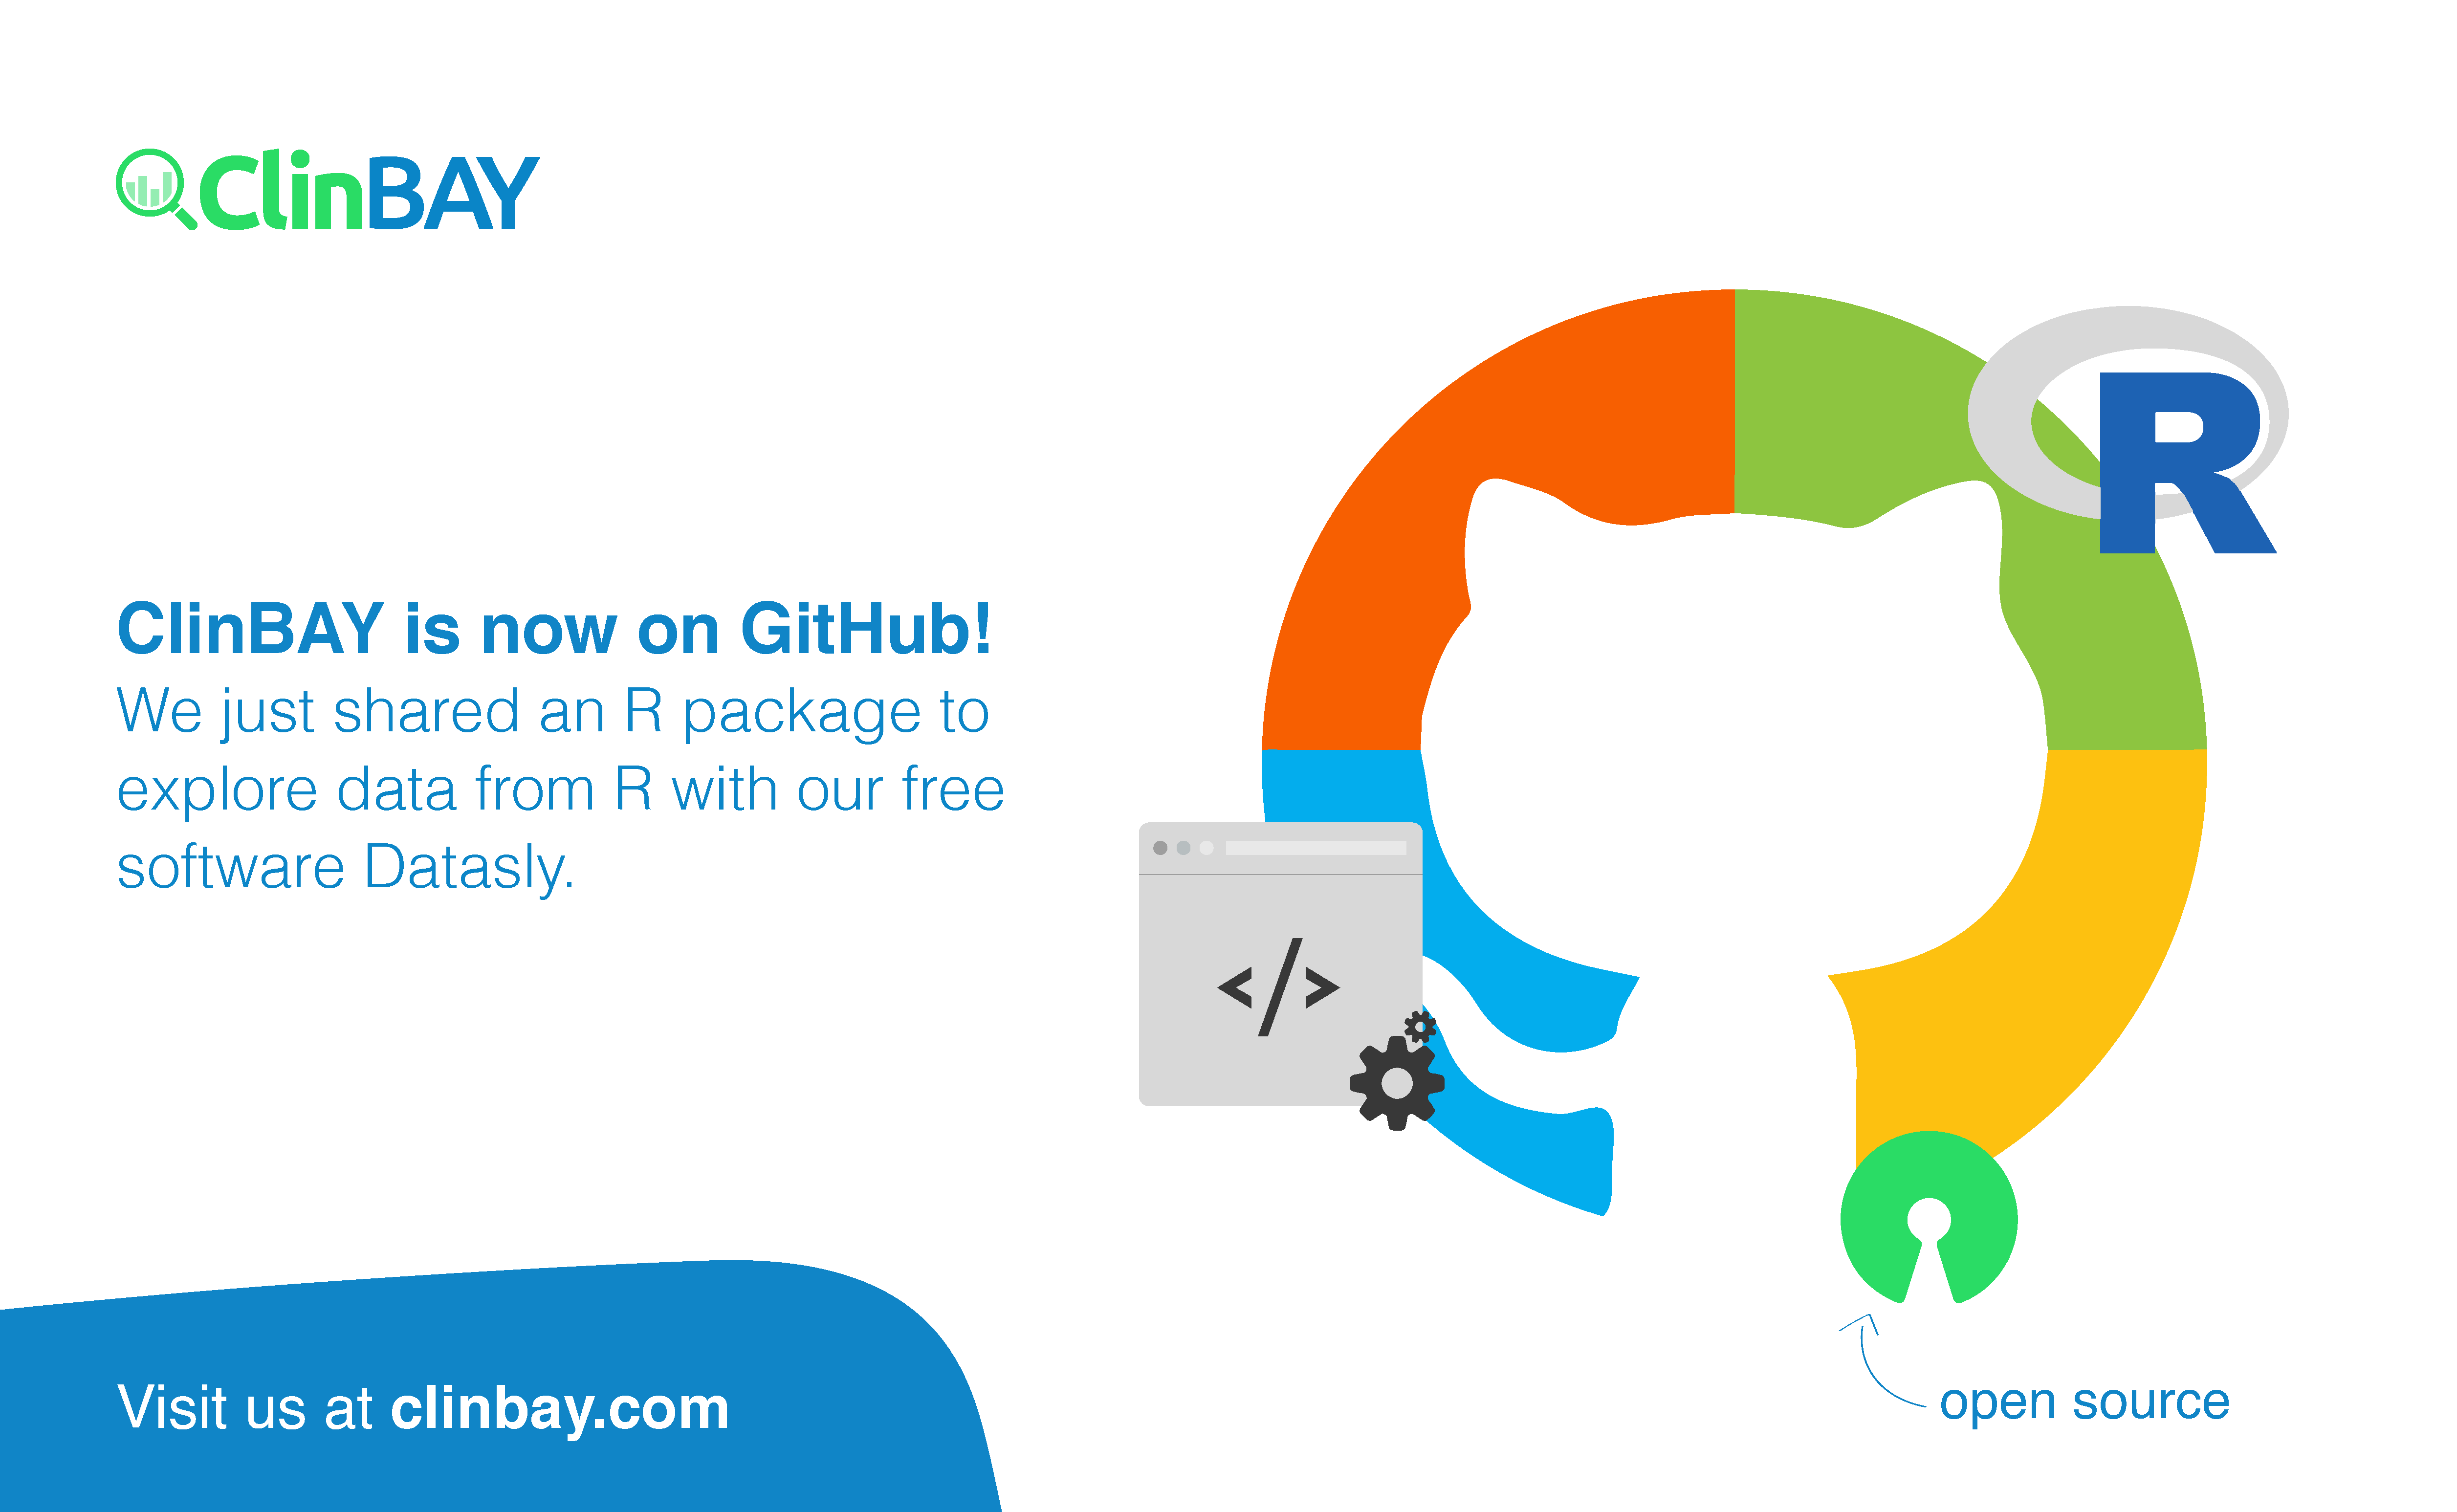 ClinBAY is now on GitHub